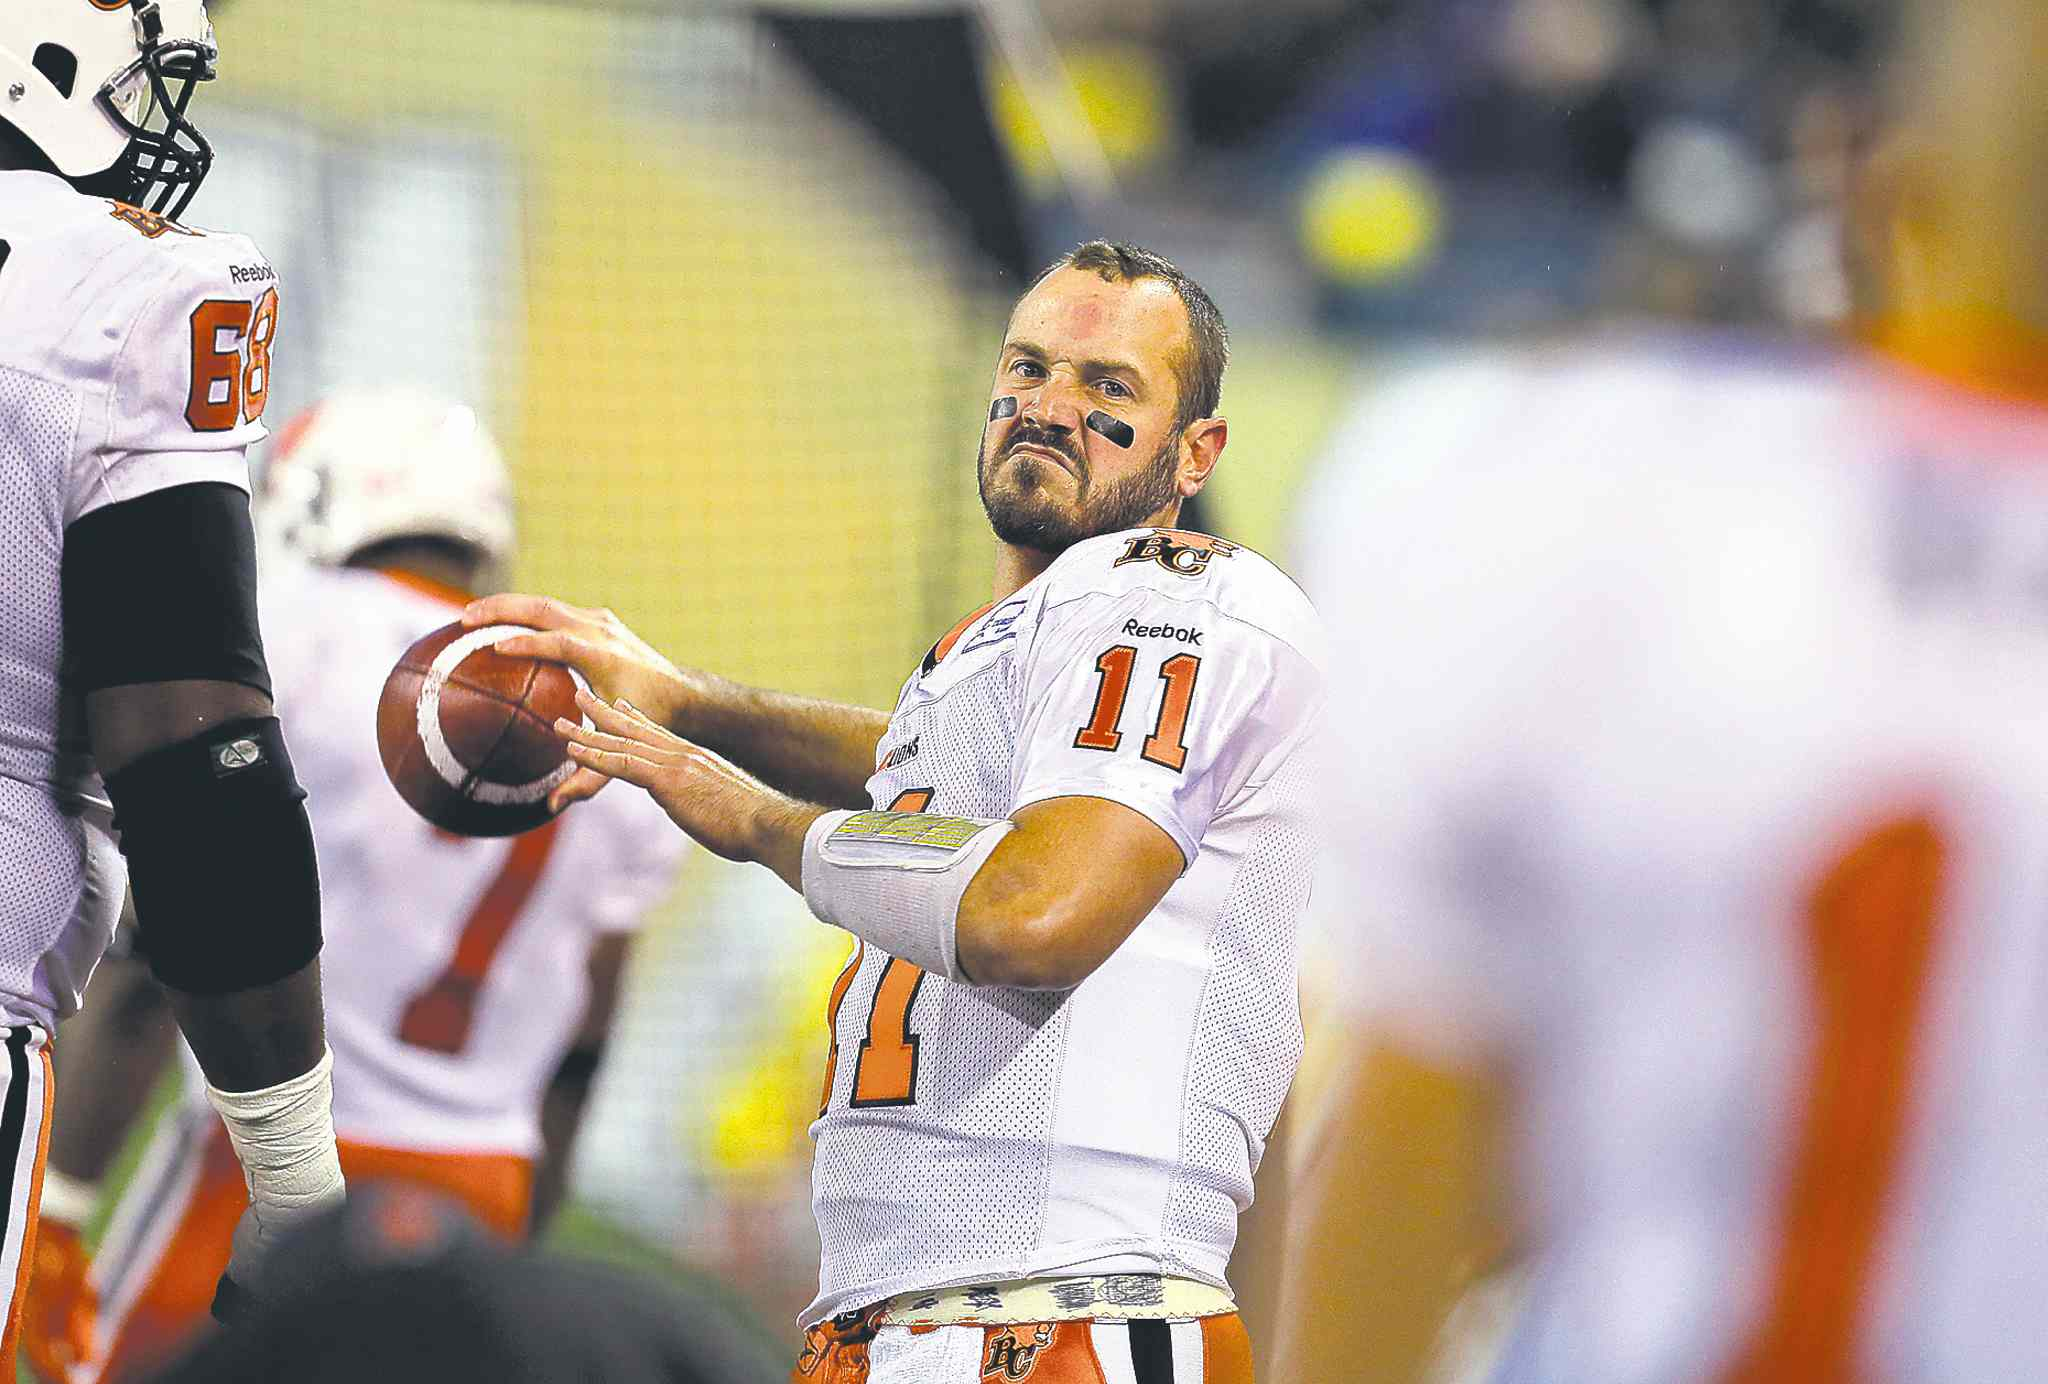 B.C. Lions quarterback Buck Pierce (above) is expected to get some playing time against the Stampeders along with No. 1 QB Travis Lulay, who is returning from injury.